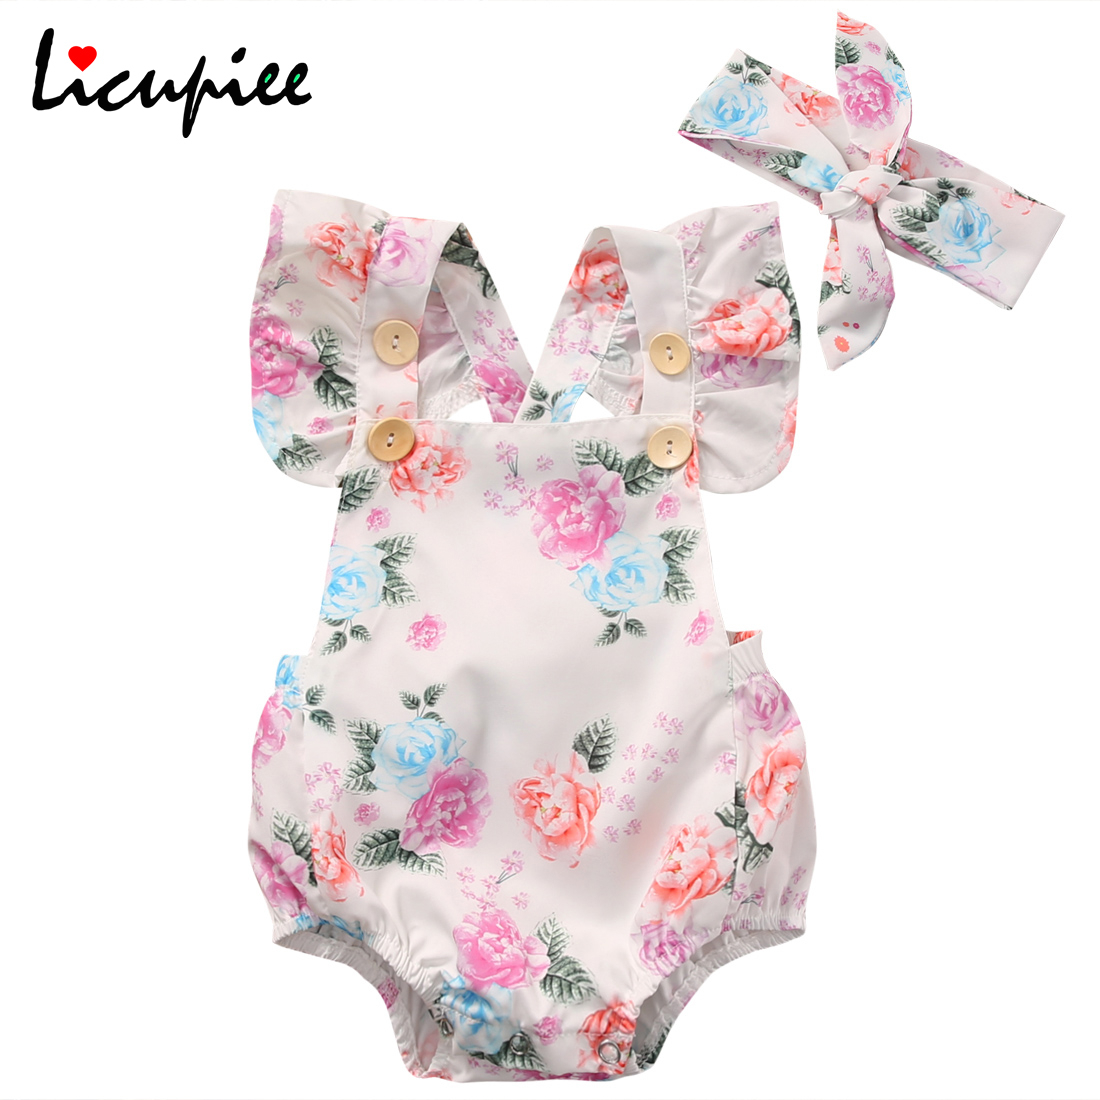 Licupiee 2PCS Baby Girls Infant Summer Fly <font><b>Sleeve</b></font> Floral <font><b>Bodysuit</b></font> Headband Clothes Sets 0-24 Months image